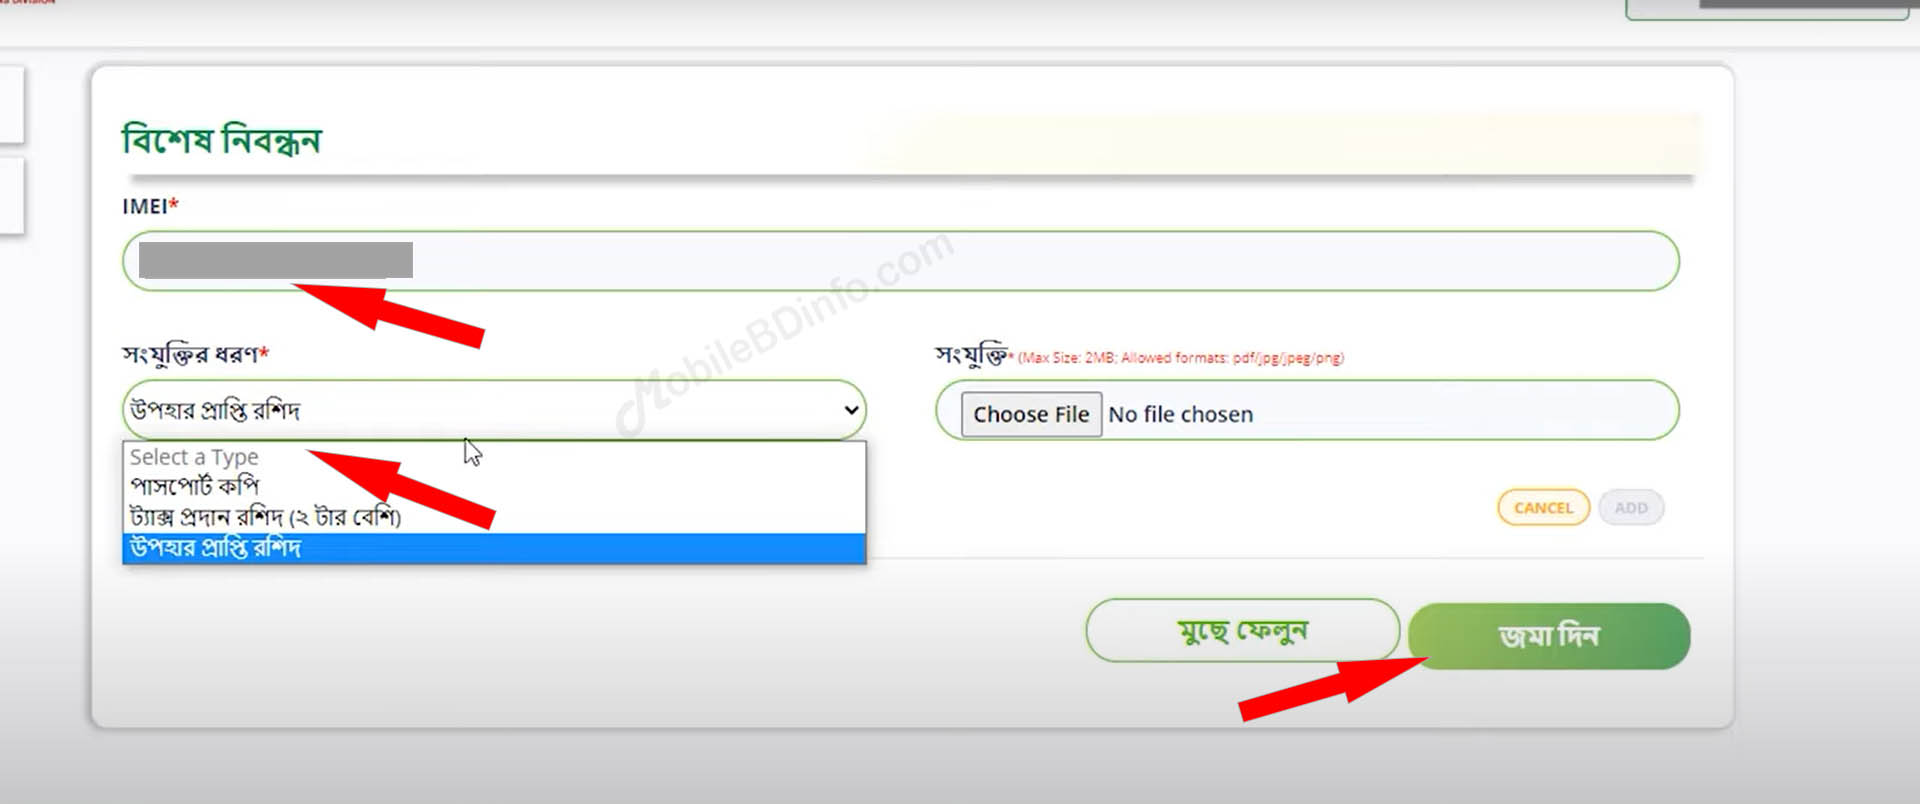 How to Mobile phone registration in bangladesh (IMEI)